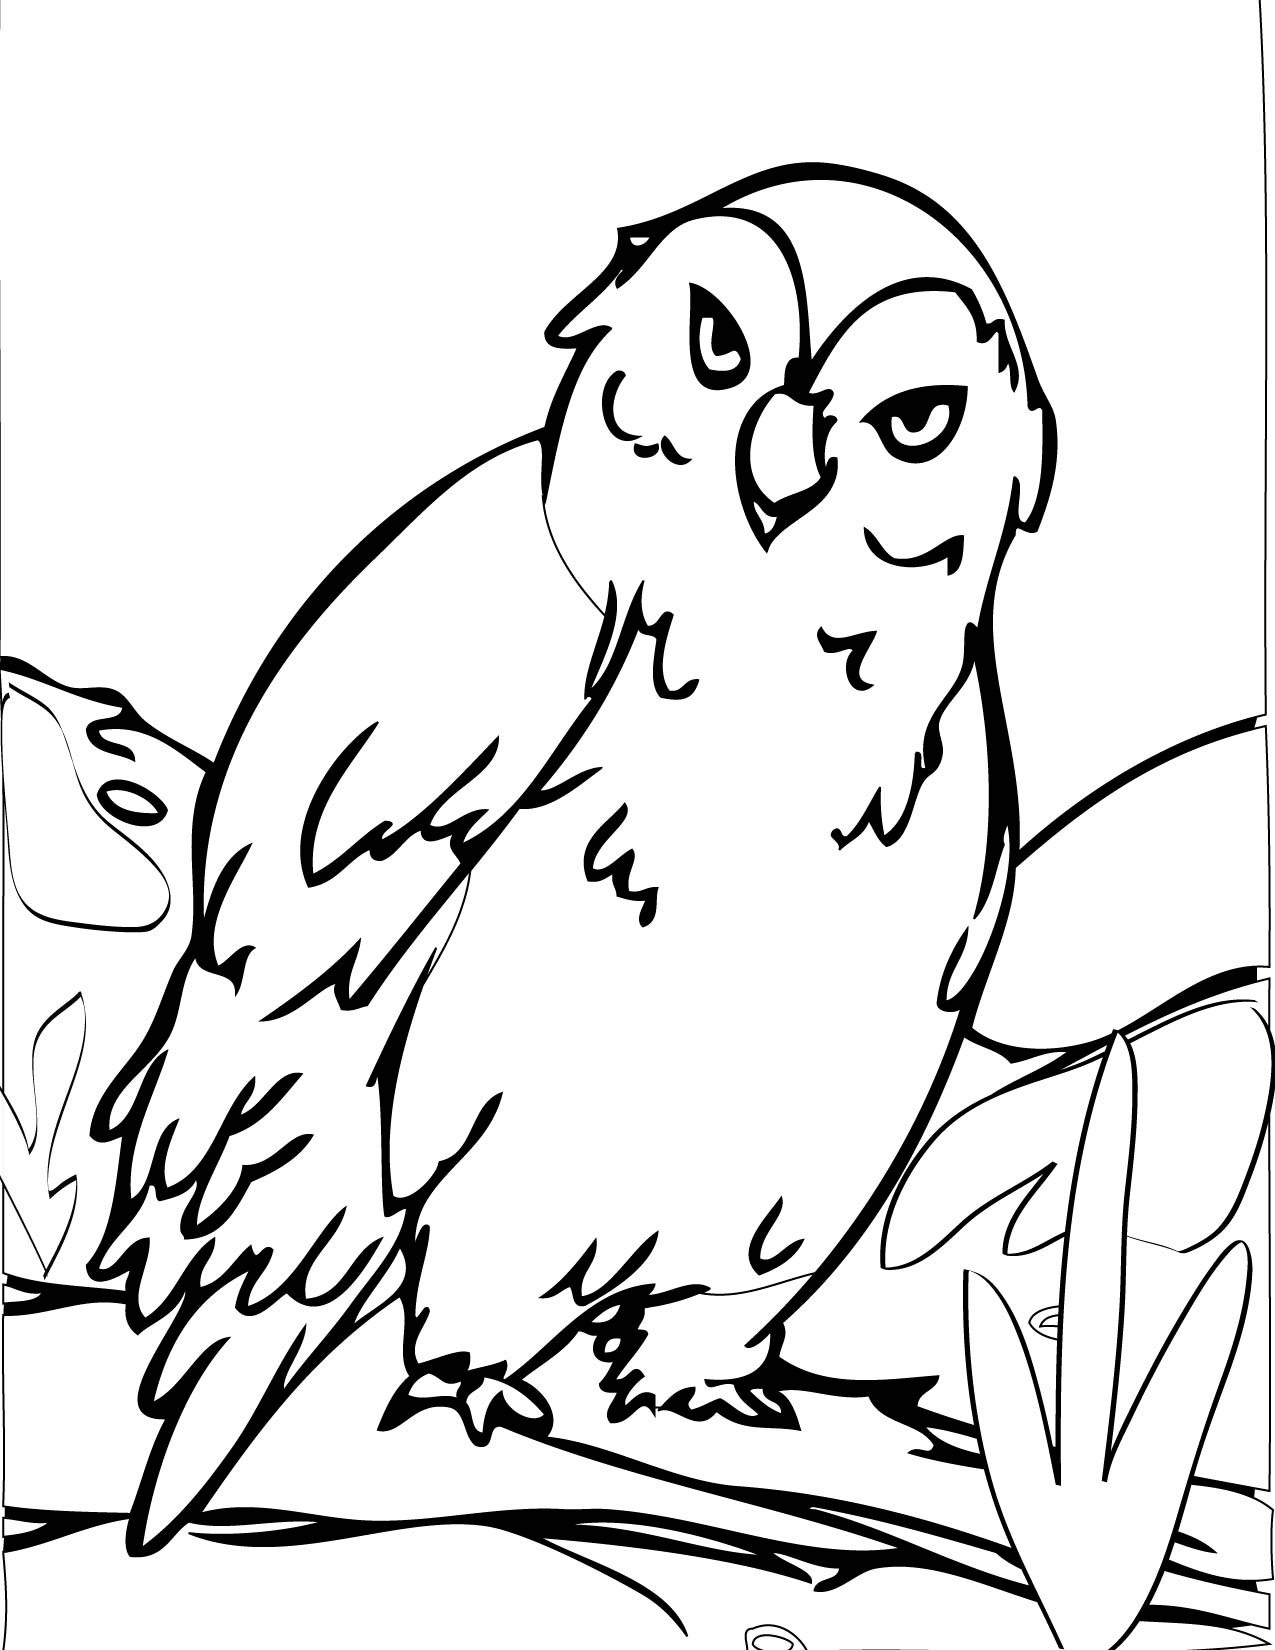 Polar animals coloring pages for kids - Snowy Owl